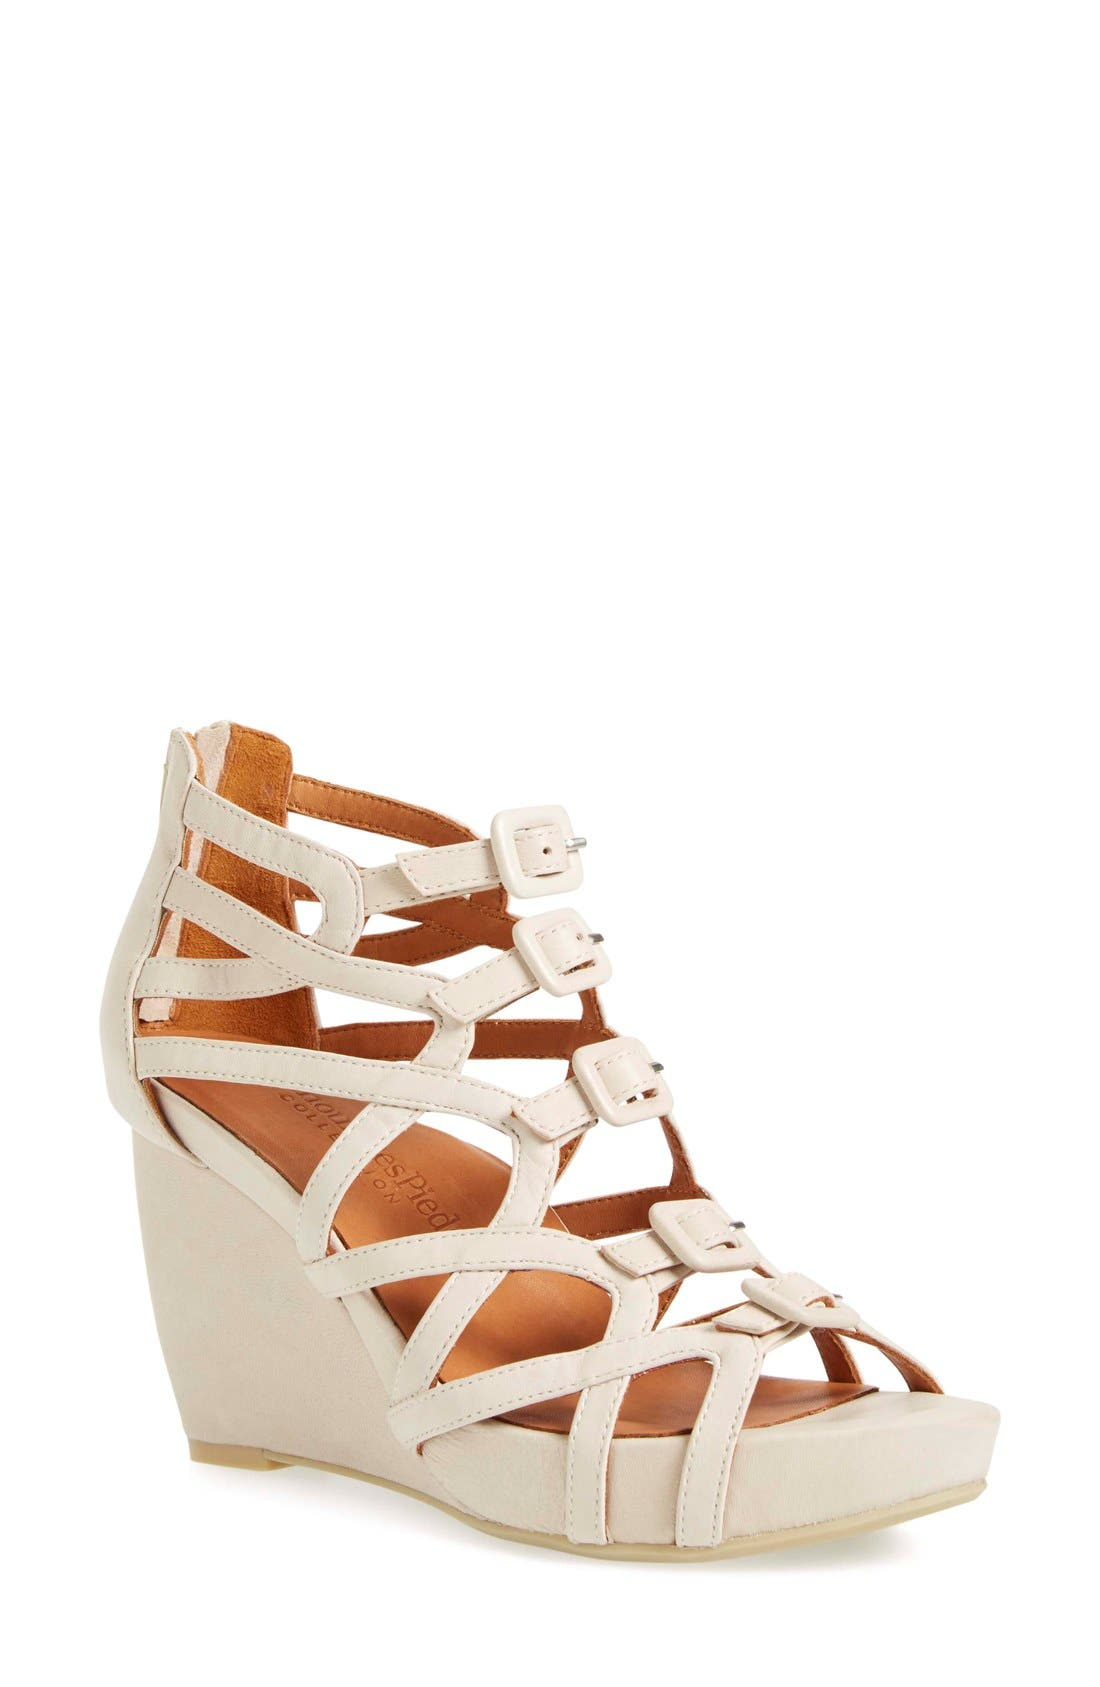 Ivanna' Gladiator Wedge Sandal,                         Main,                         color, 260